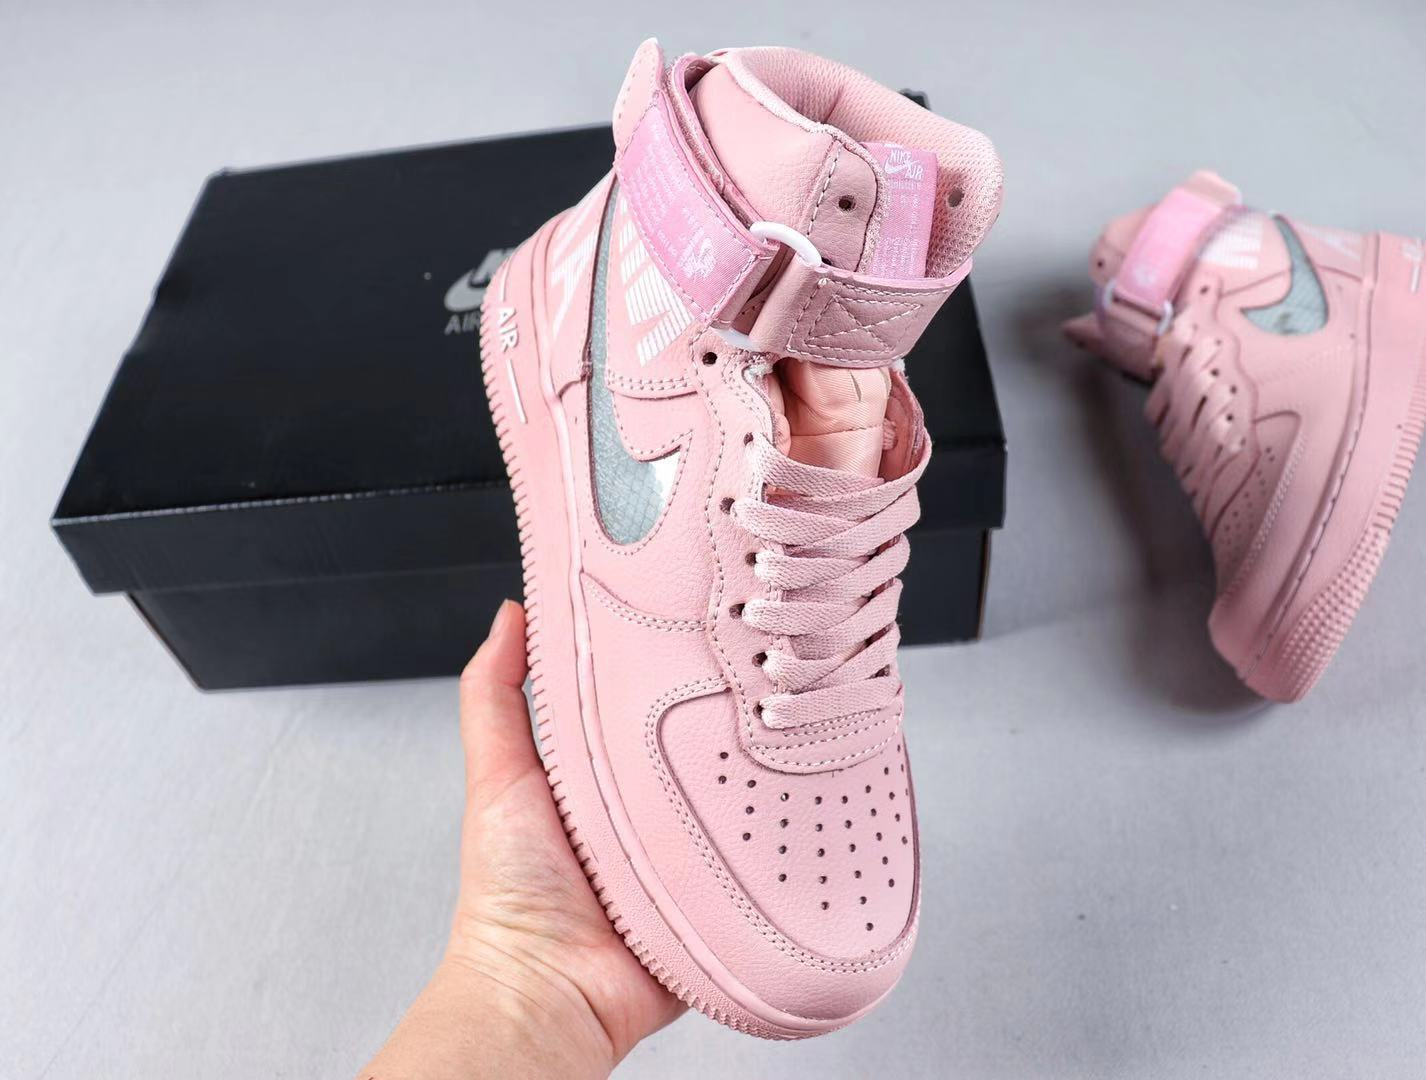 Nike Wmns Air Force 1 High Pink/White Top Shoes For Sale CQ0449-101